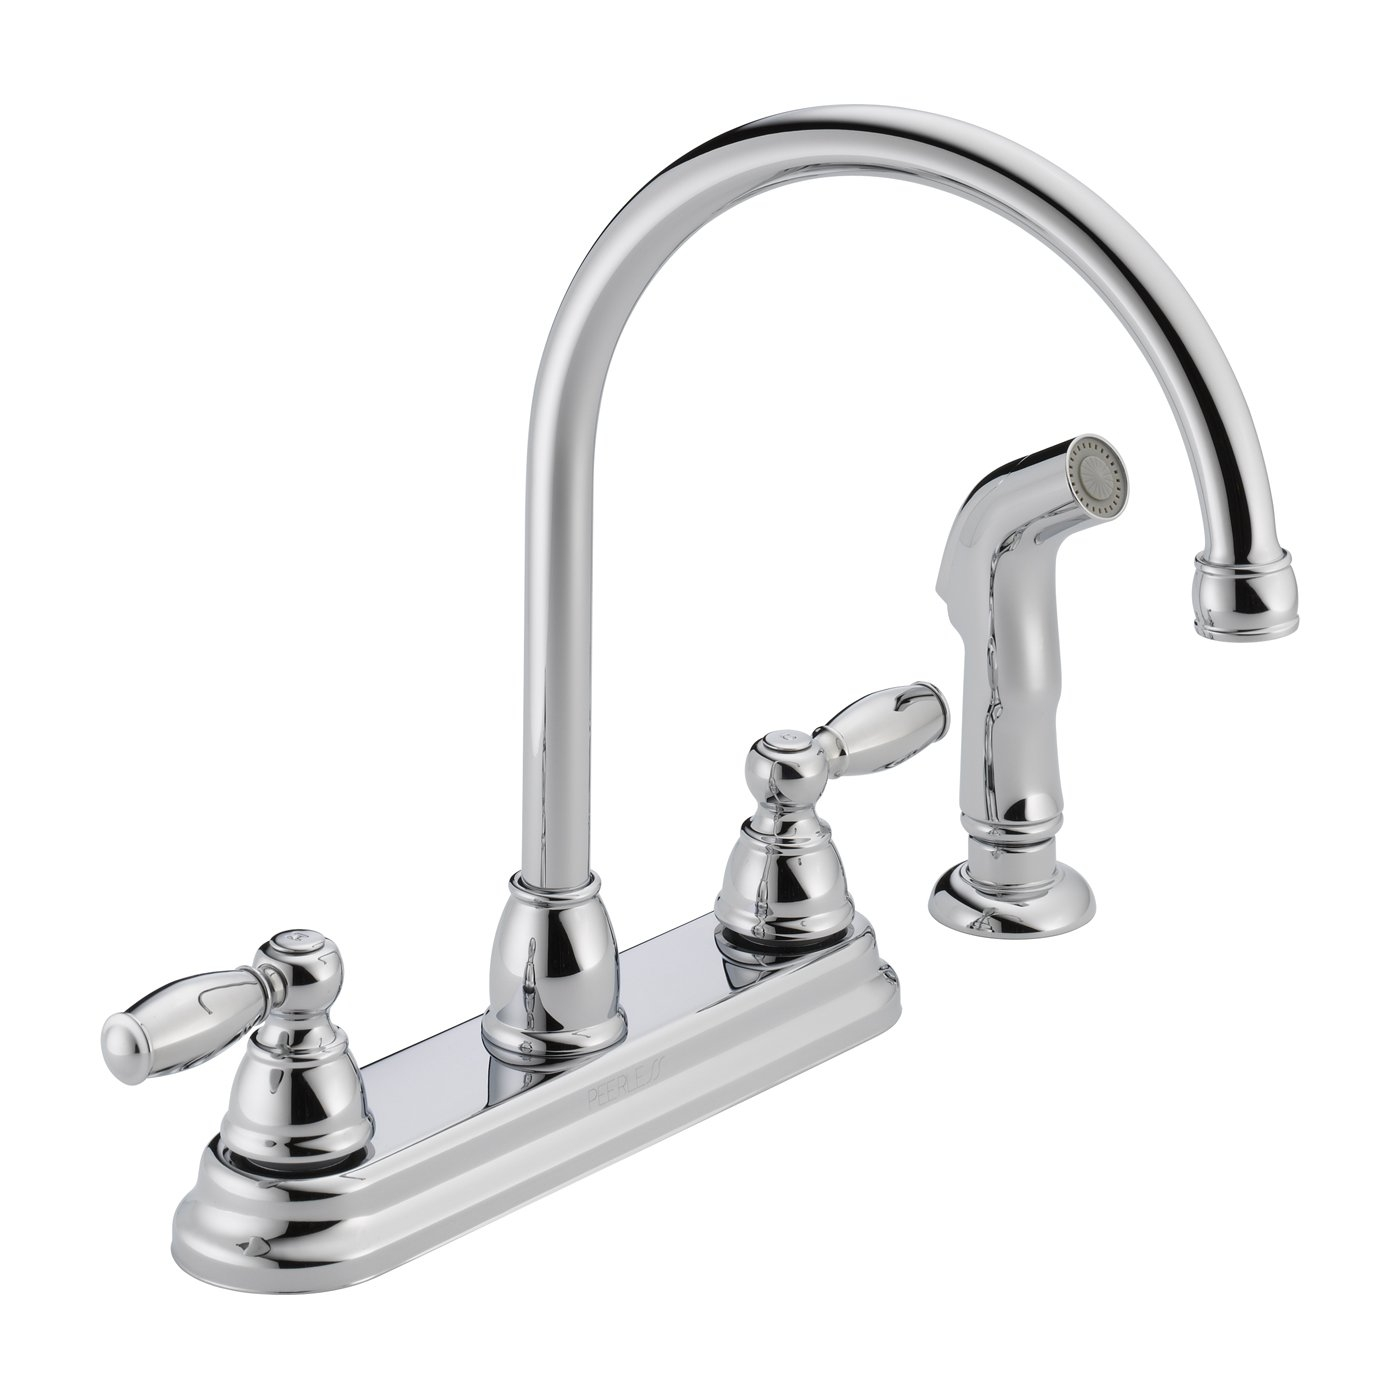 2 handle proflo kitchen faucet 2 handle proflo kitchen faucet 28 sprayer kitchen faucet modern faucets kitchen faucets 1400 x 1400